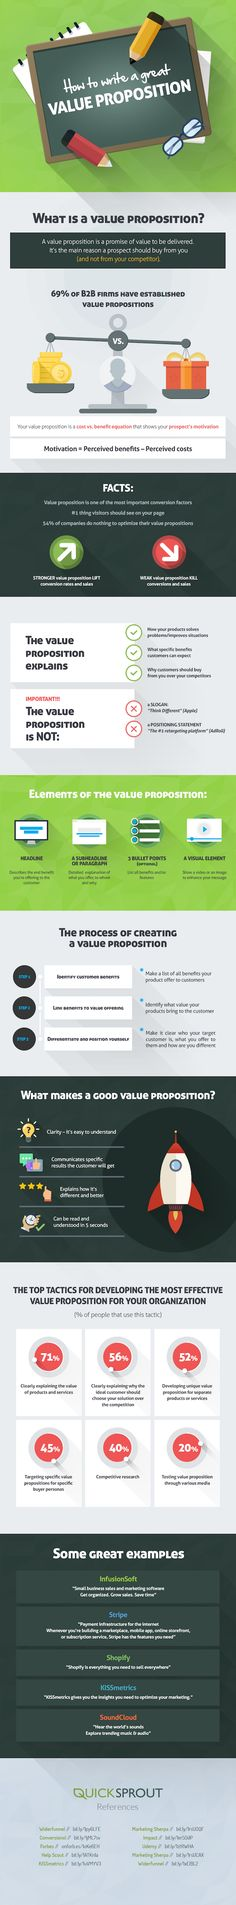 How to Write a Strong Value Proposition [Infographic], via HubSpot (shared) and Quick Sprout designed